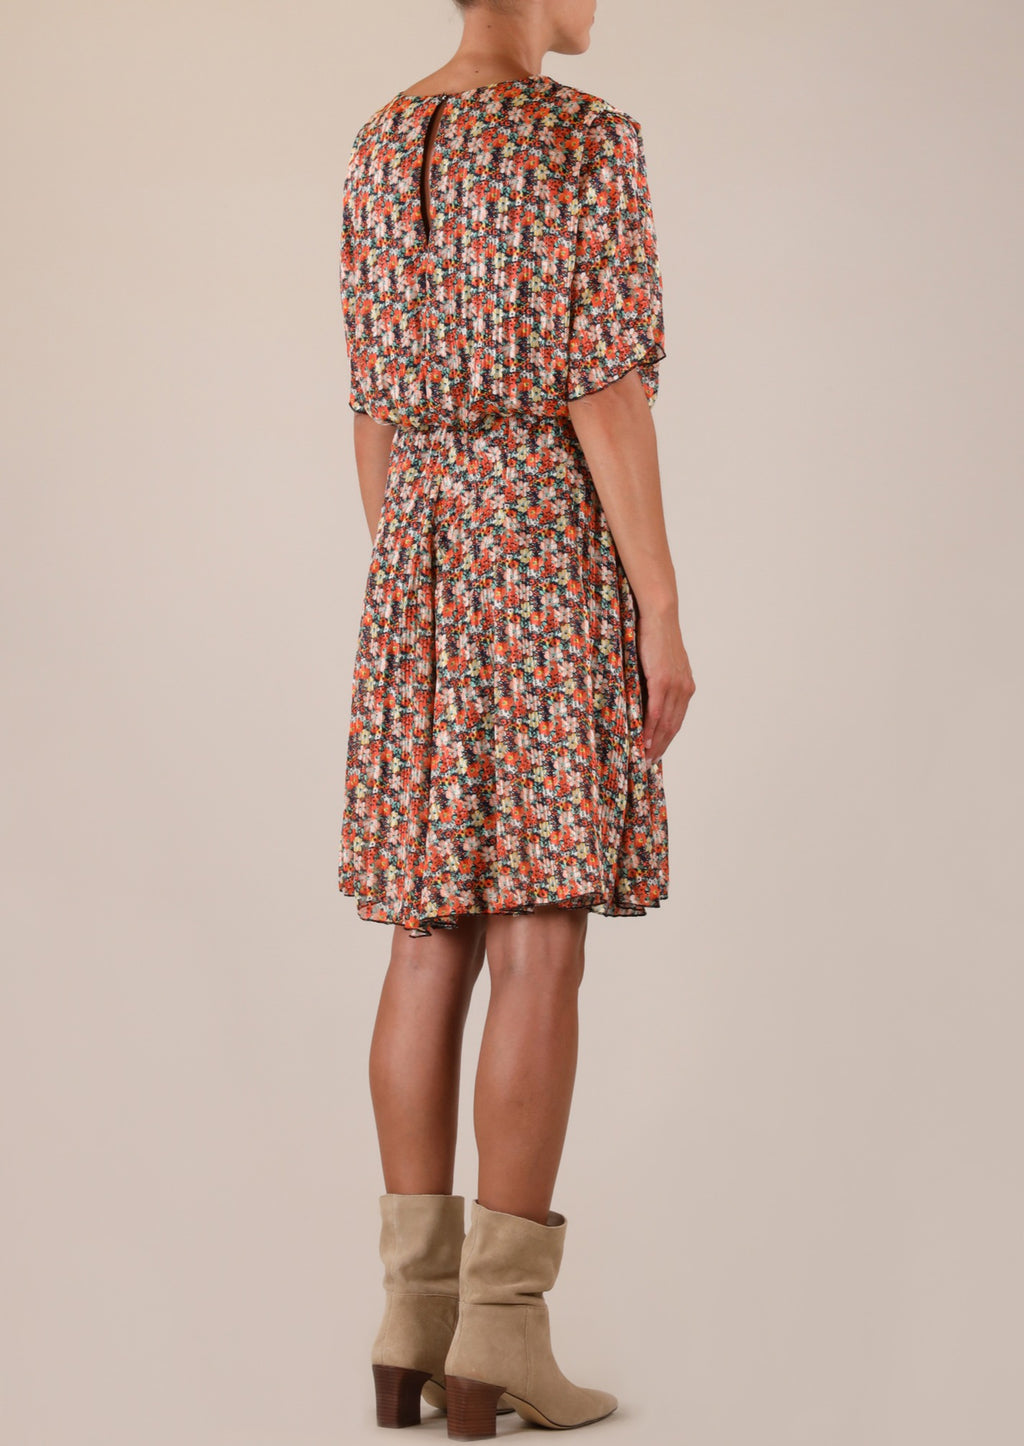 Rino & Pelle Bianna Orange flower Print Dress